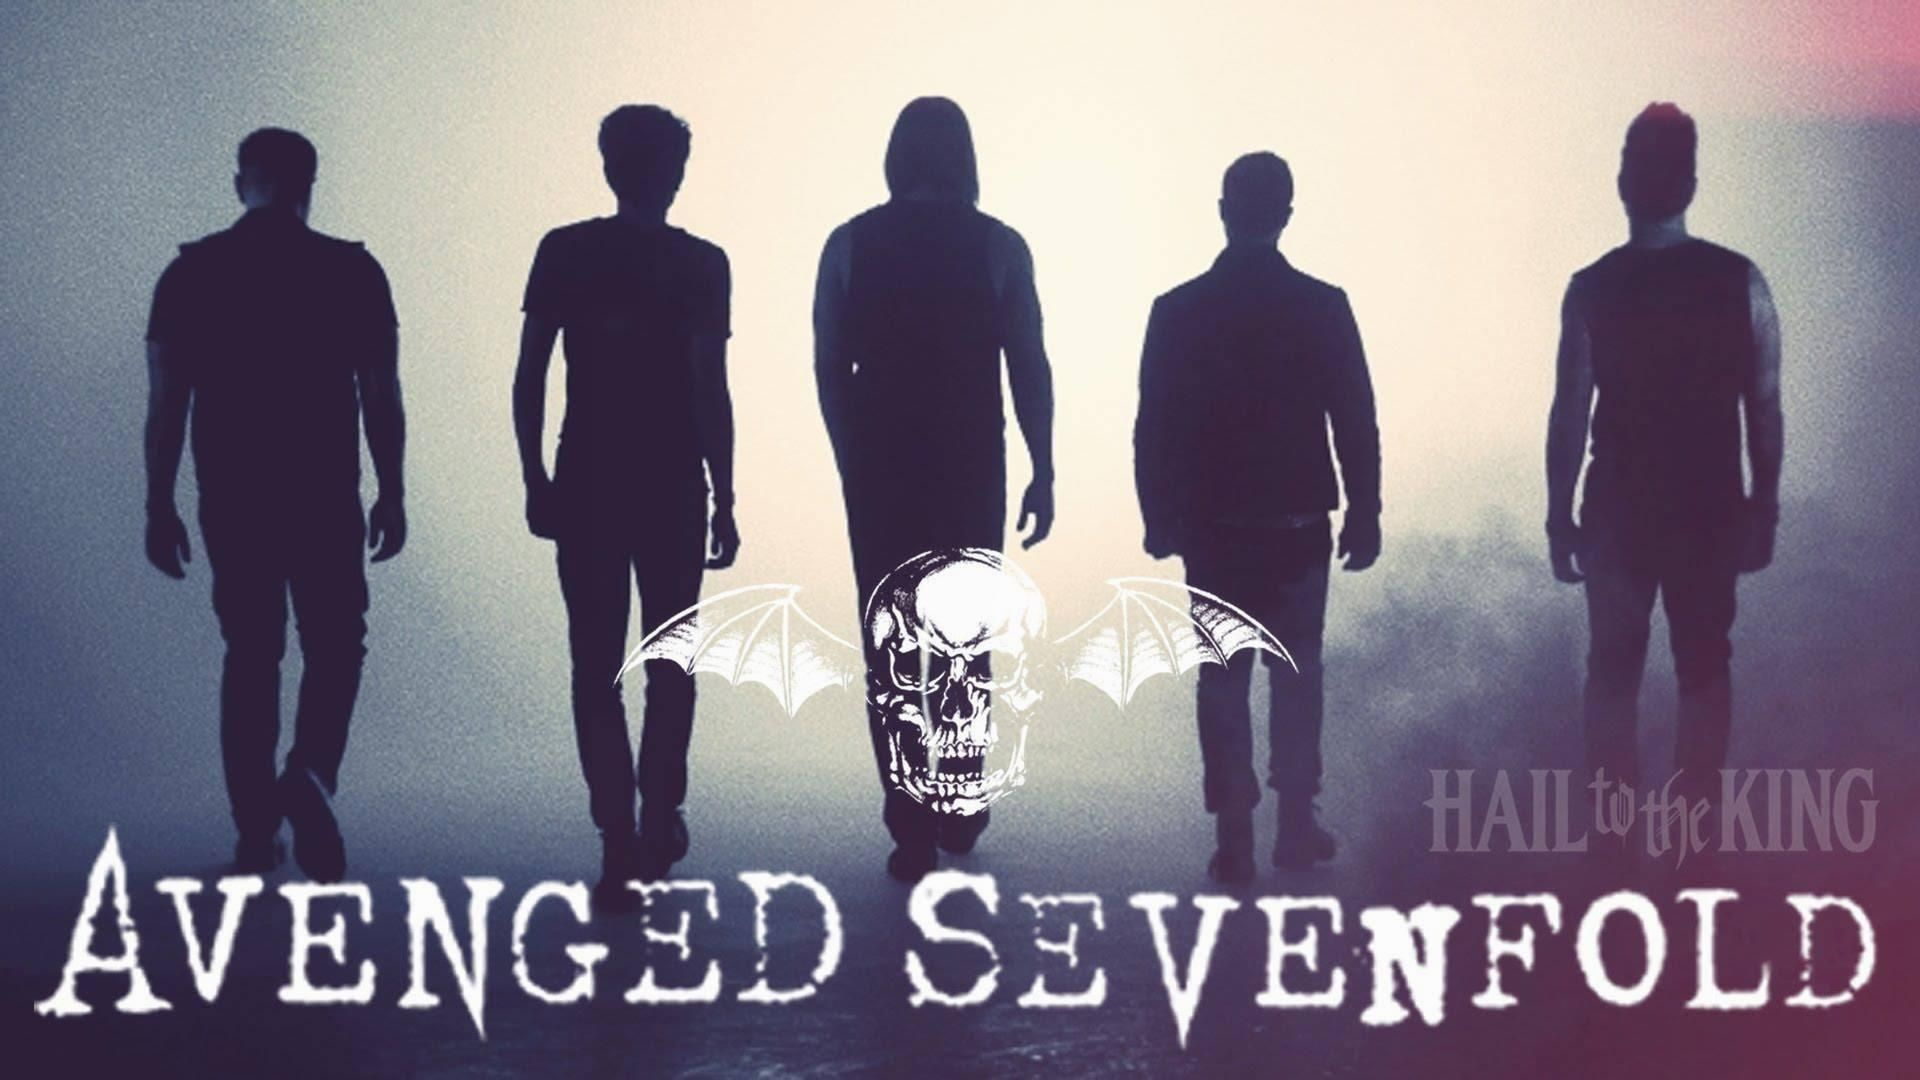 Download Avenged Sevenfold Iphone Wallpaper 1366 768 Avenged